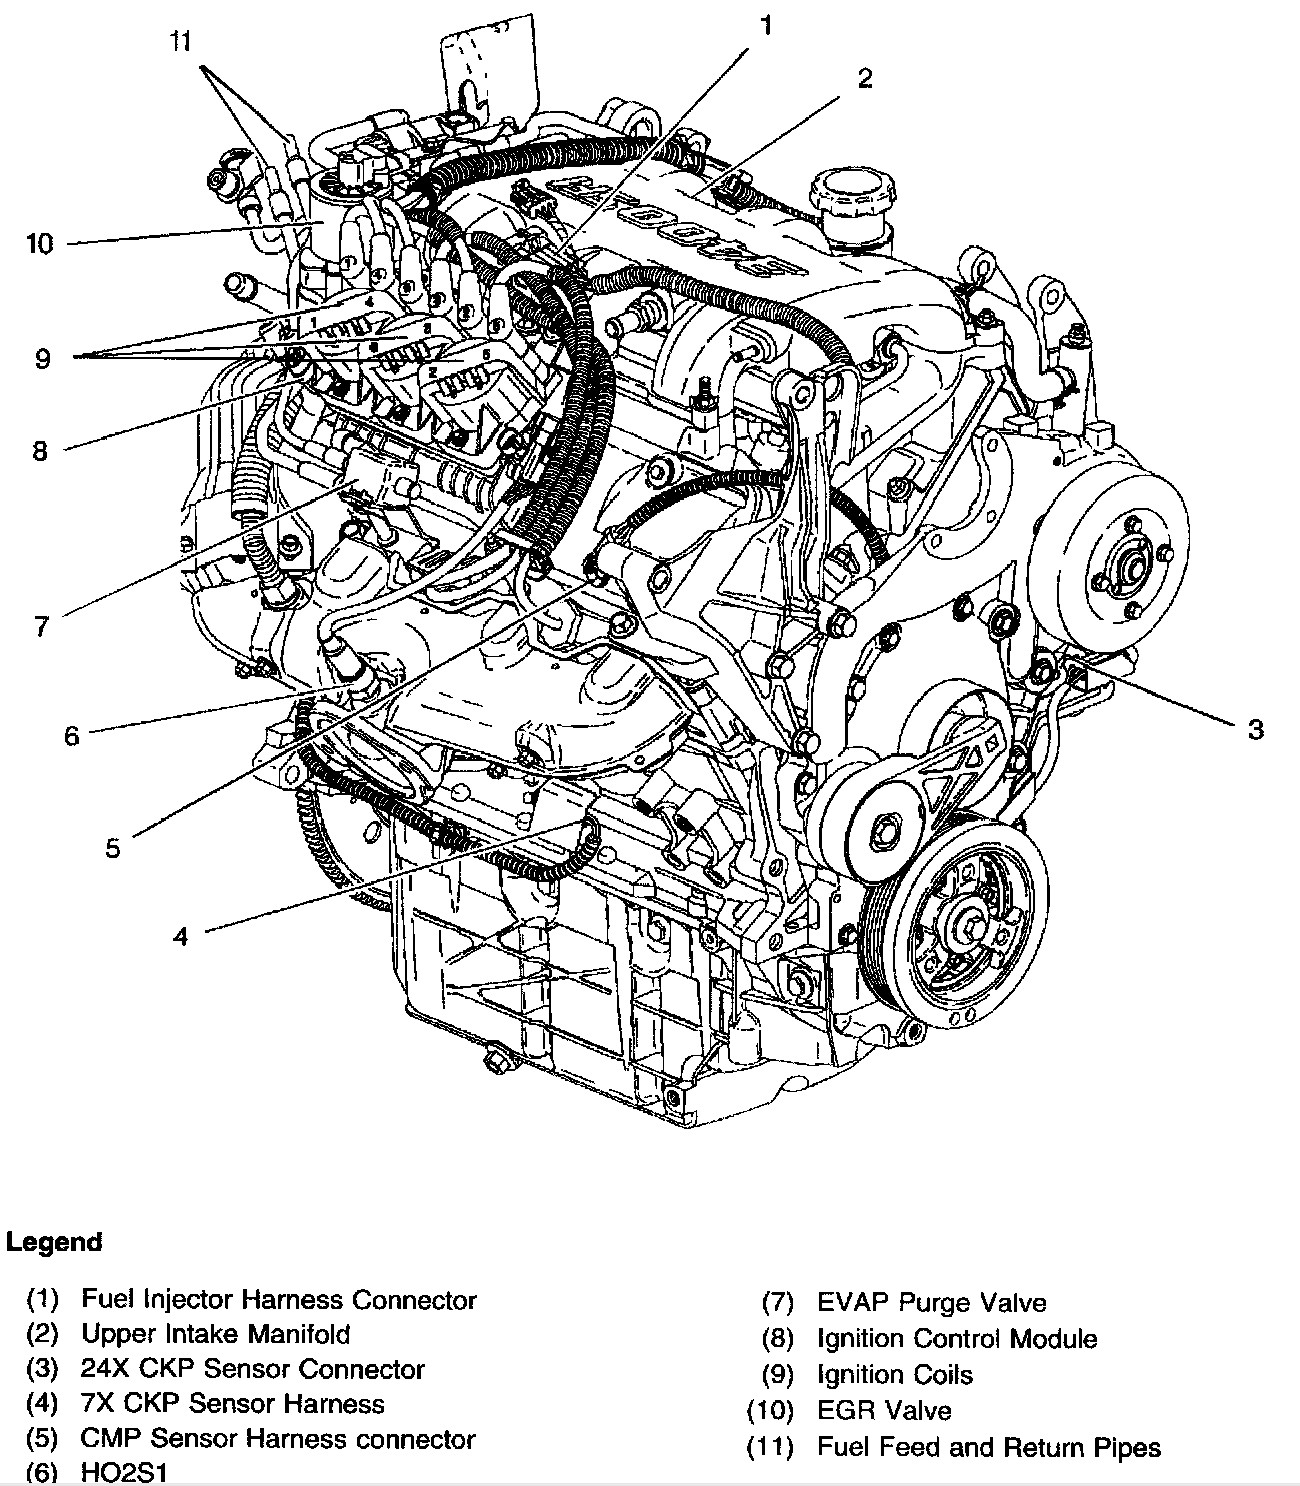 hight resolution of 1996 camaro engine diagram wiring diagram priv 96 camaro engine diagram